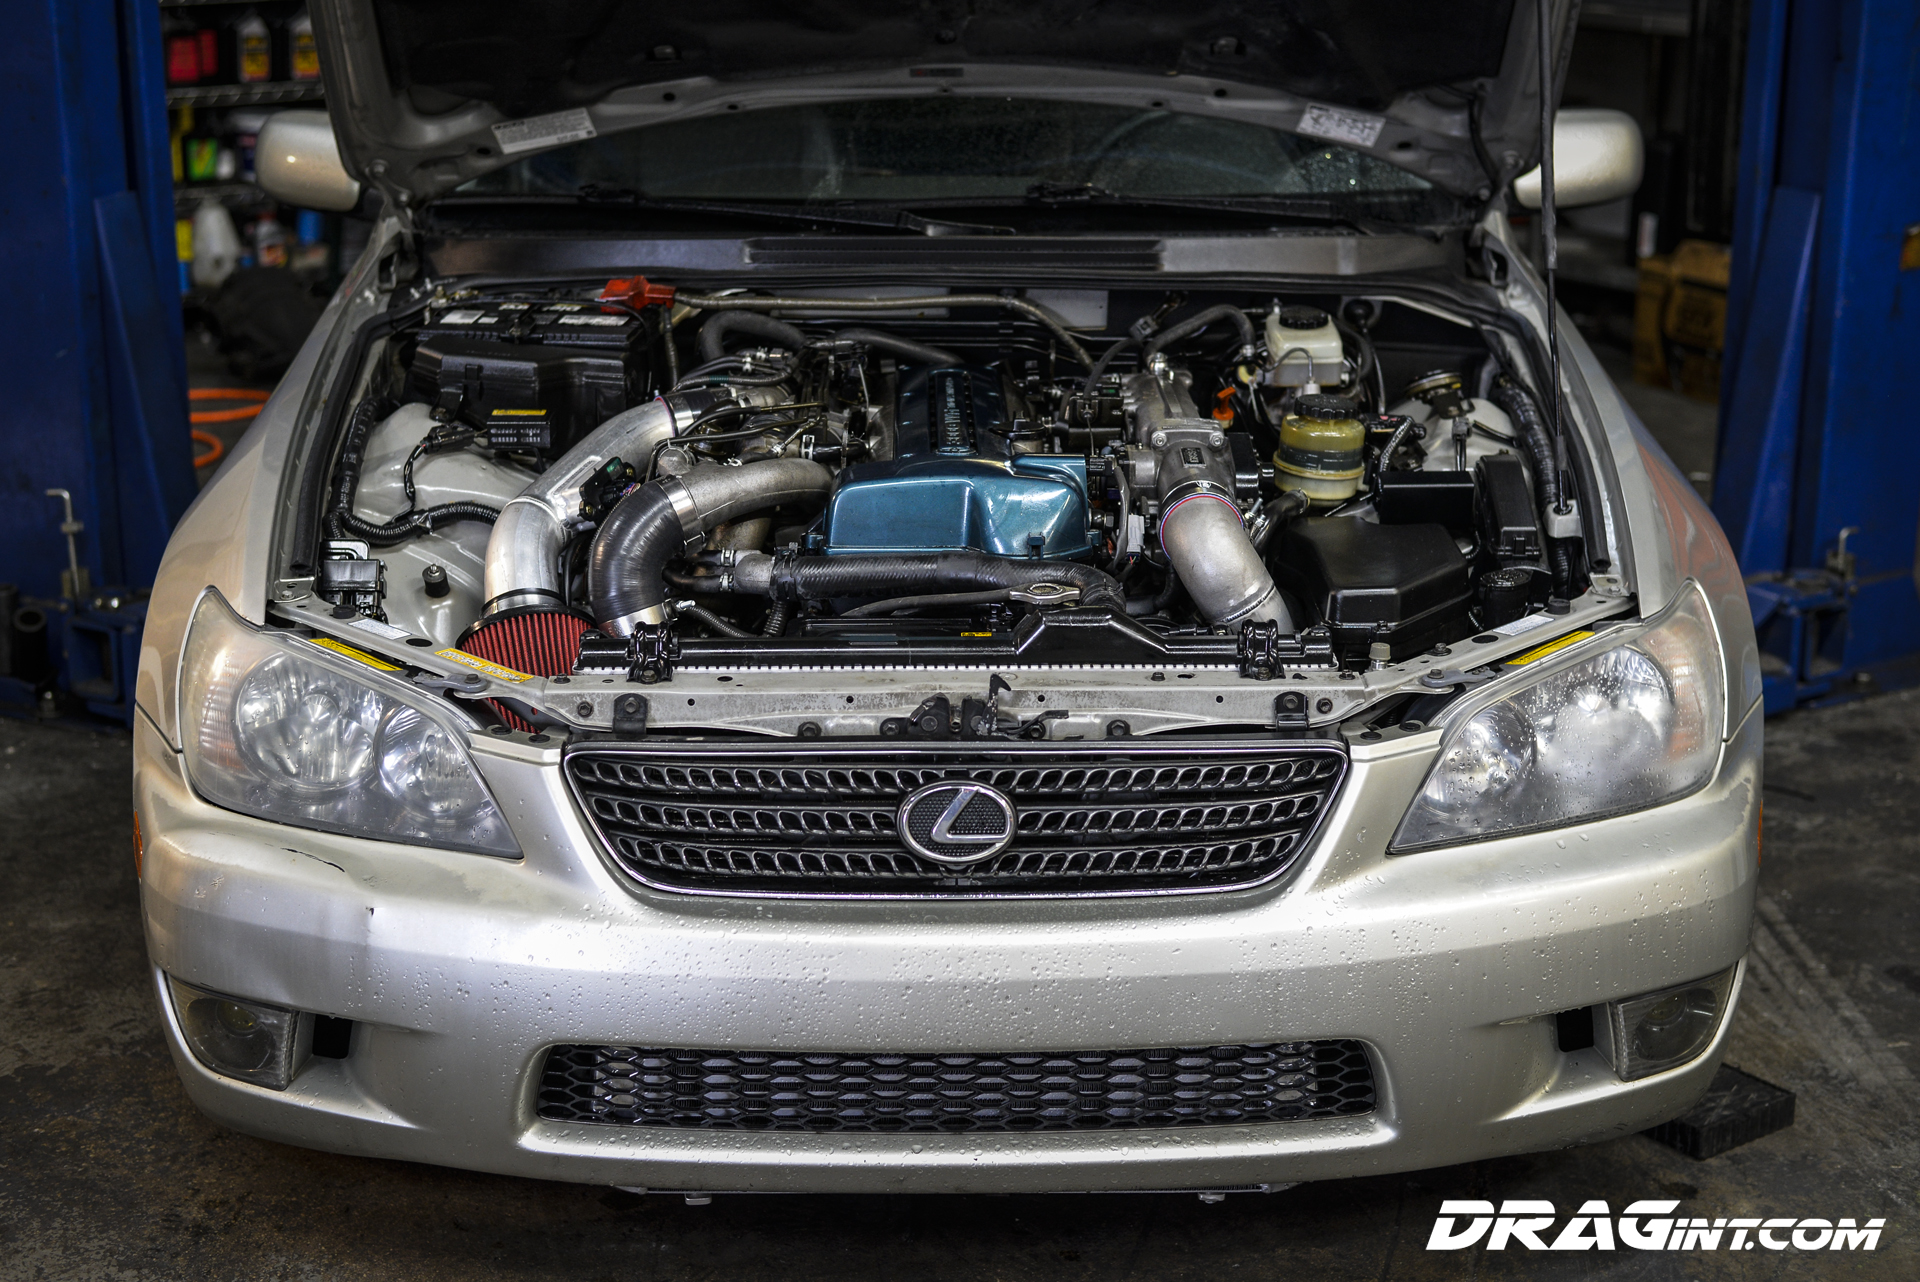 Lexus IS300 2JZGTE VVTI Twin Turbo Automatic Swap | DRAG International